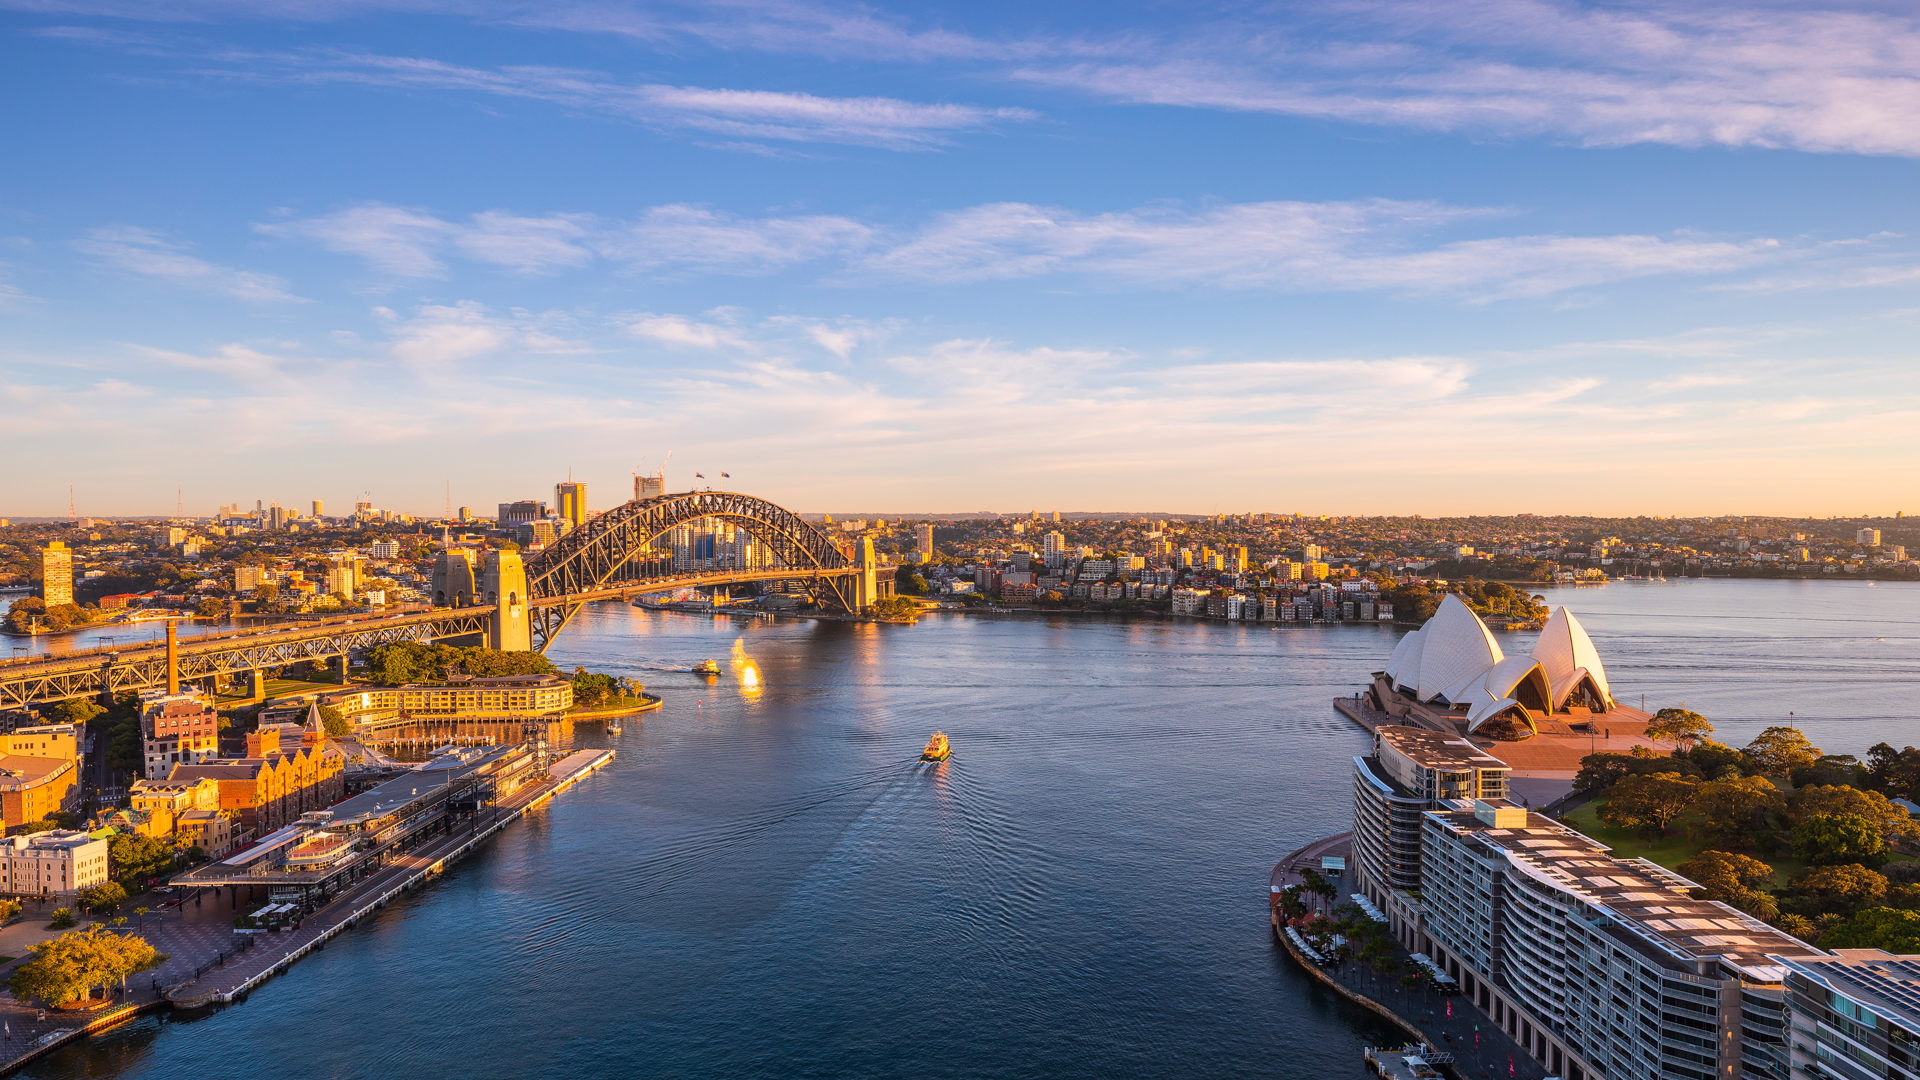 Our Sydney